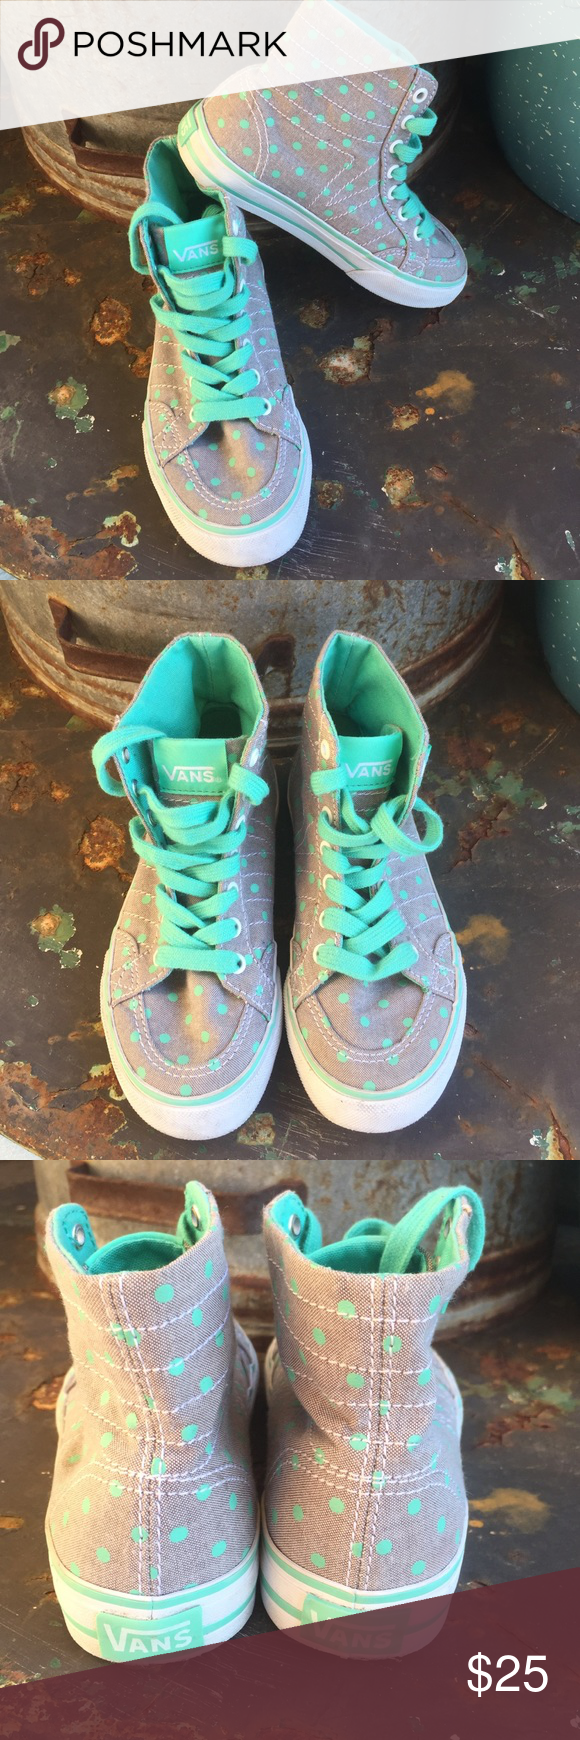 9553fc501c VANS Gray Mint Green Polka Dots Missy Size 10.5. Great condition as photos  show. Gray with mint green polka dots and mint green shoe laces reasonable  offers ...